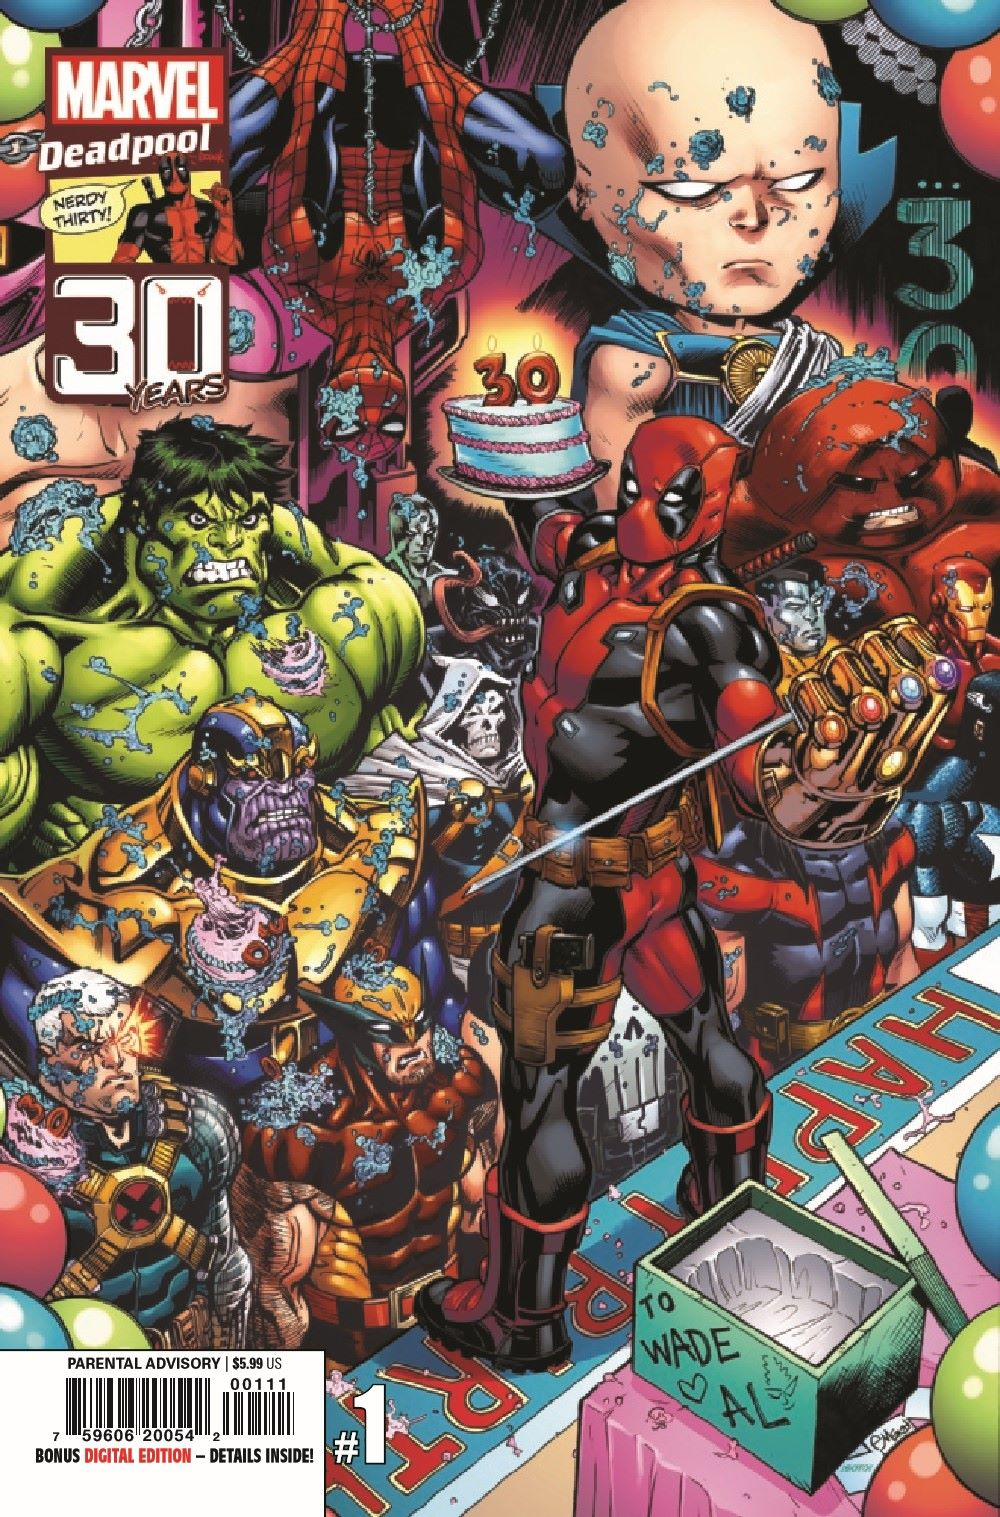 DPOOLNERDY302021001_Preview-1 ComicList Previews: DEADPOOL NERDY 30 #1